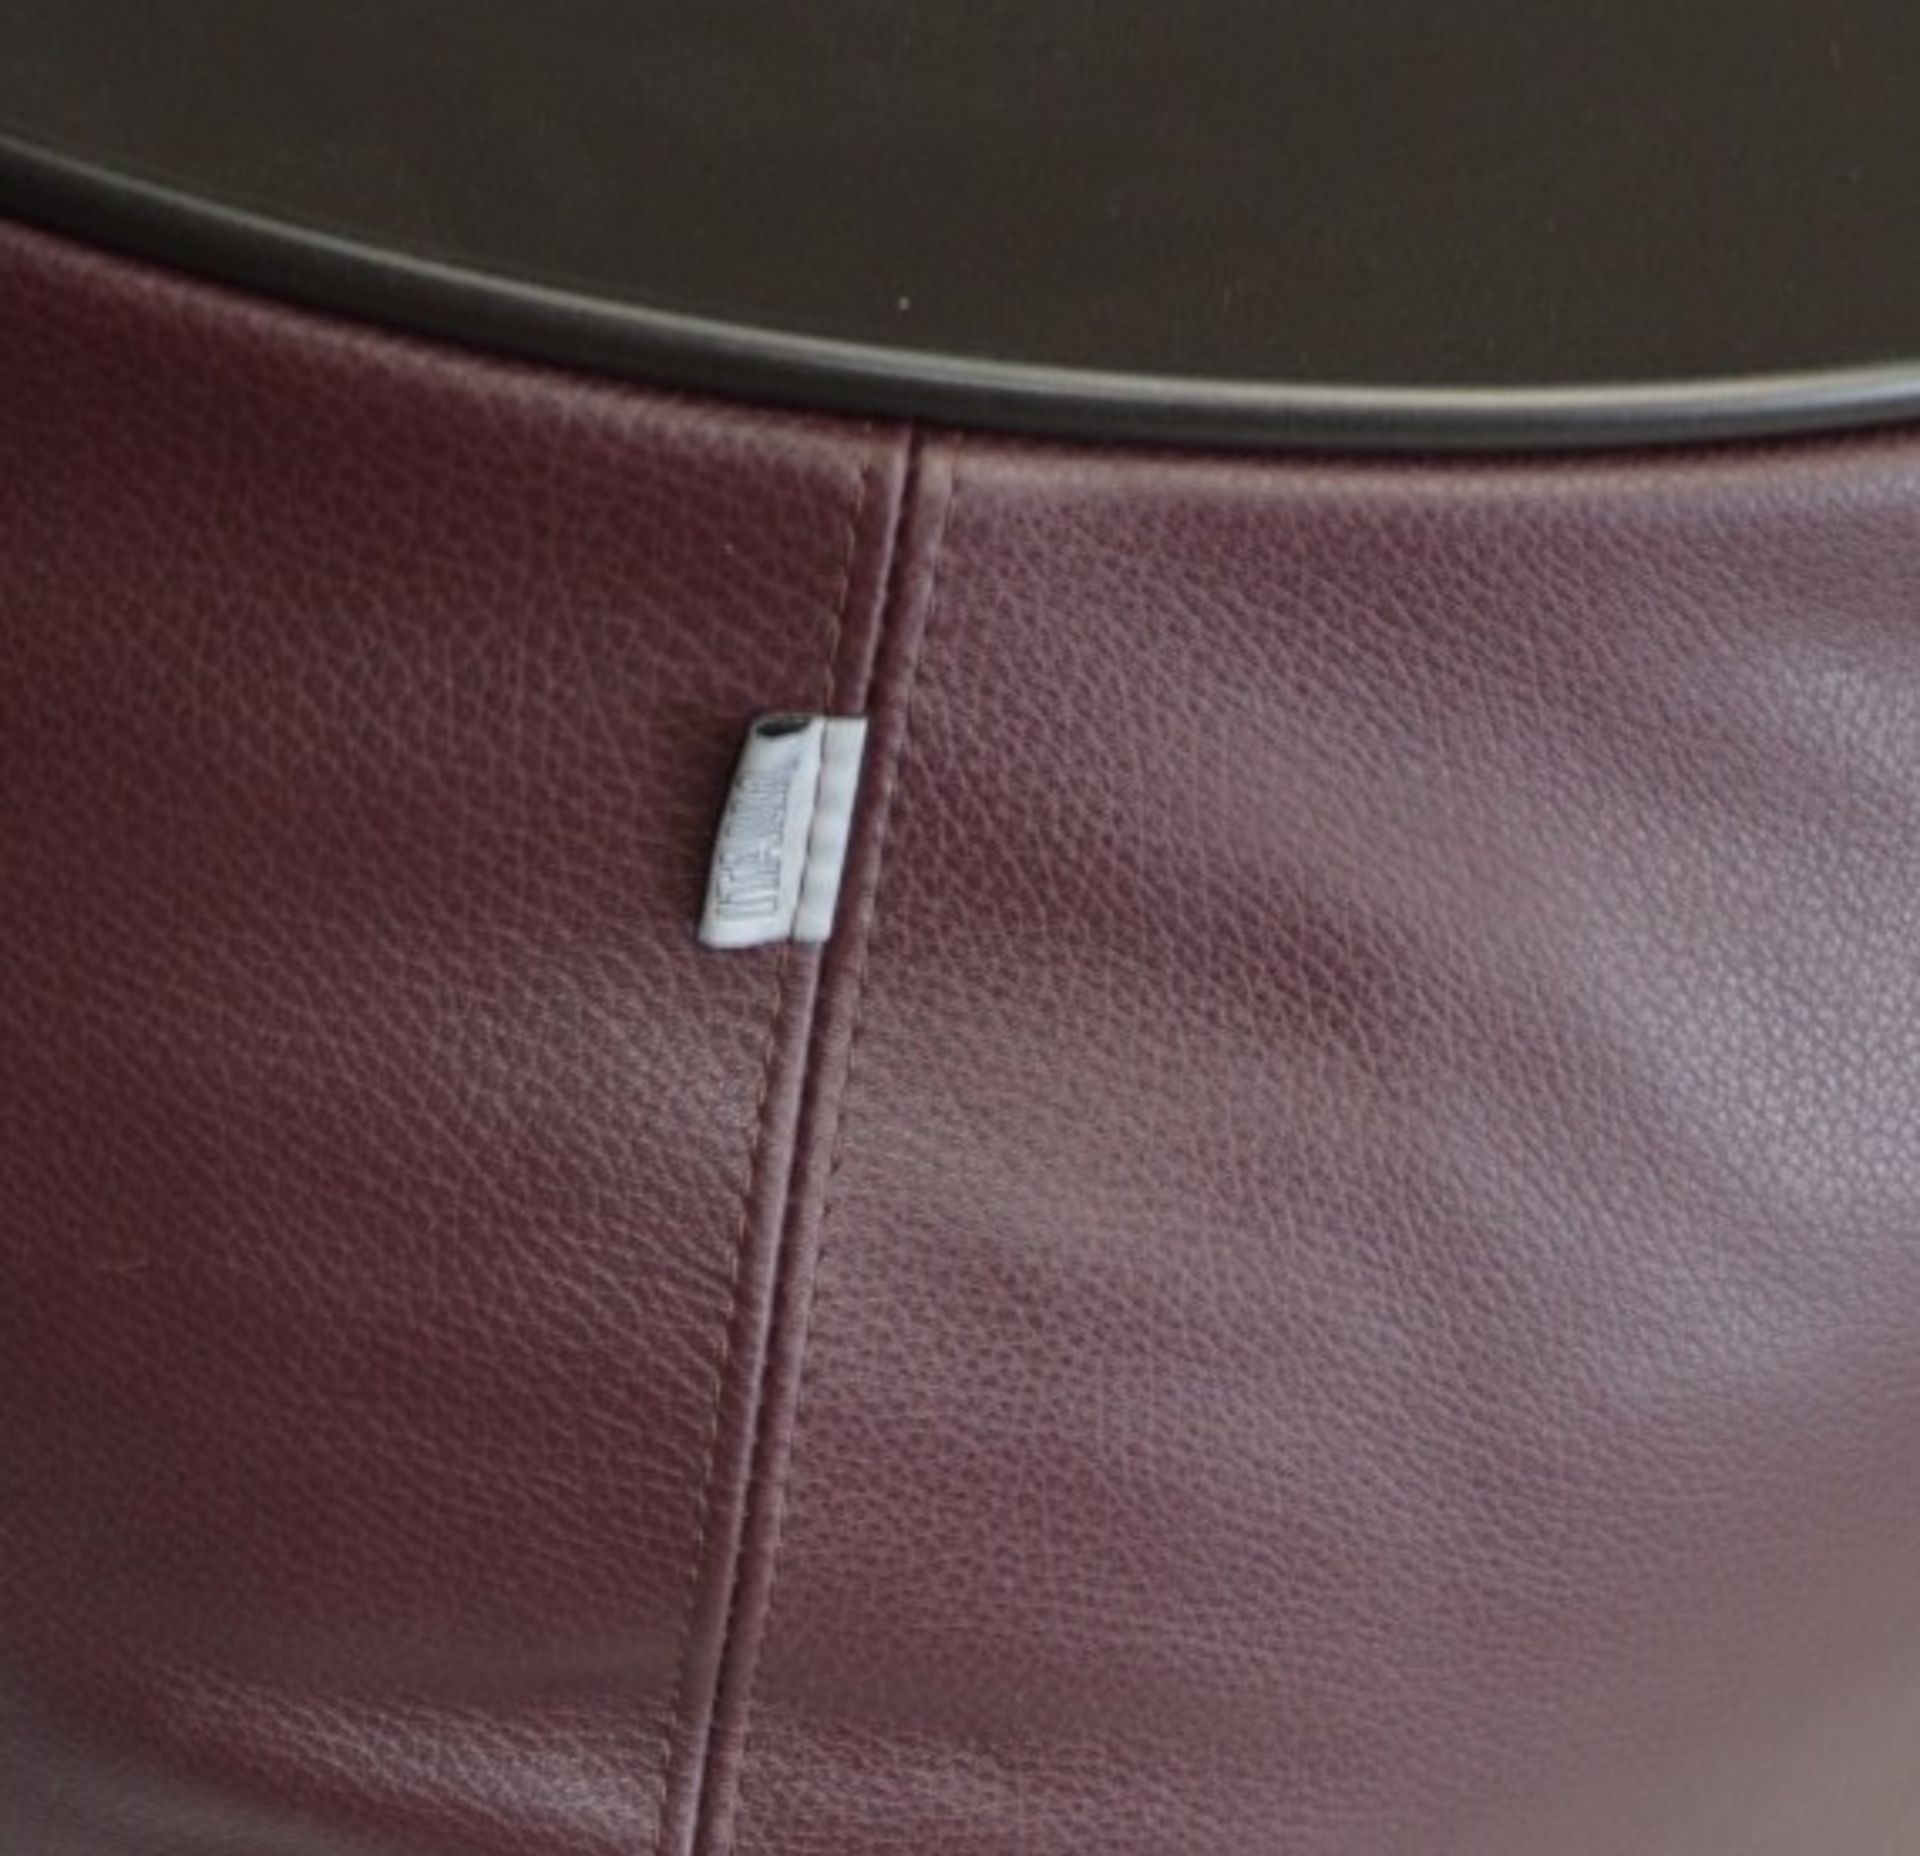 1 x B&B ITALIA 'Fat Fat' Lady Fat Low Coffee Table Upholstered In Genuine Leather - RRP £1,706 - Image 3 of 5